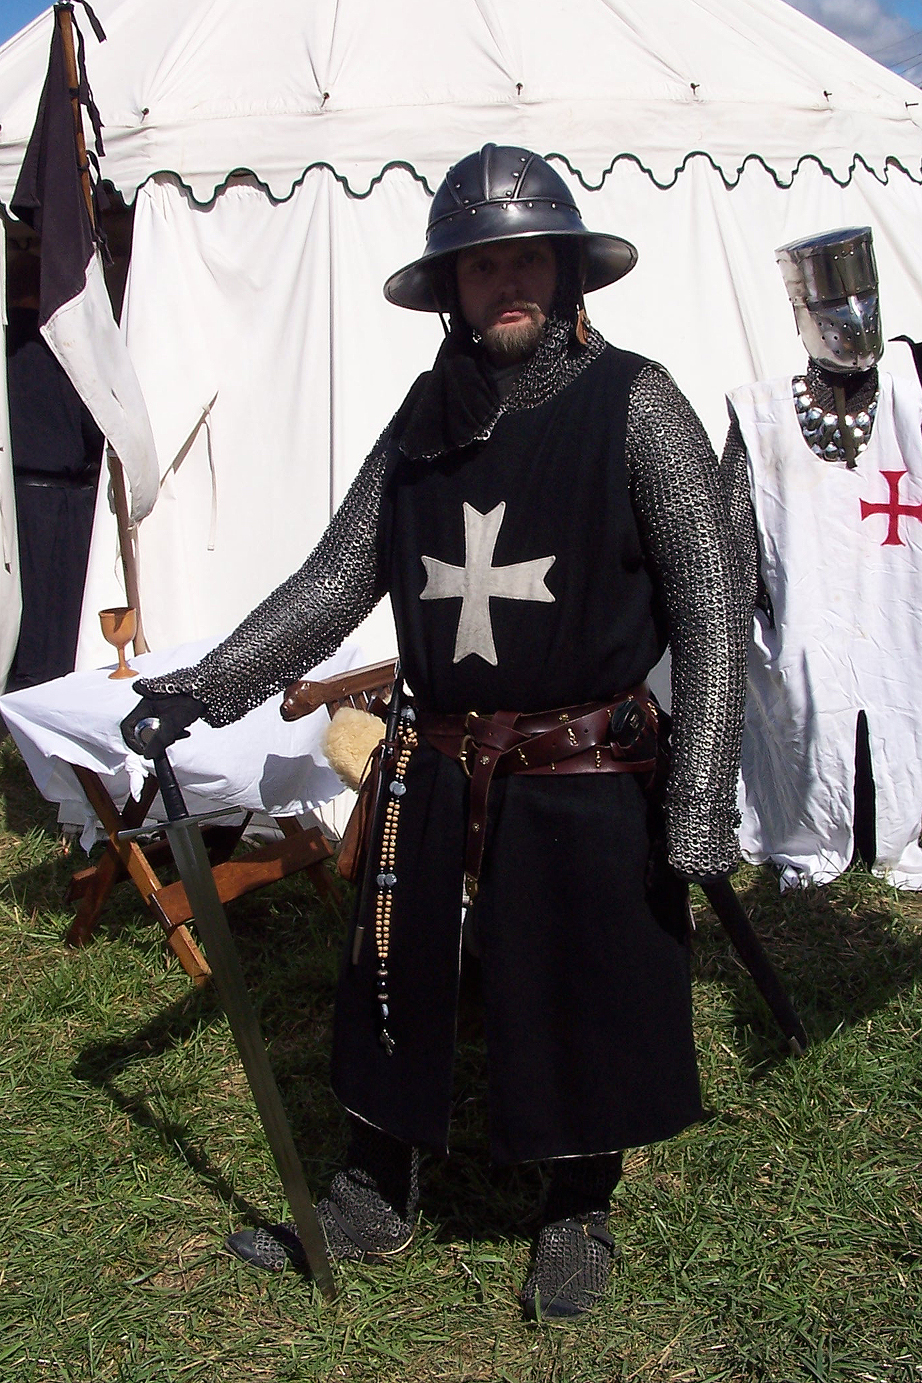 Knights Templar, Knights Hospitallers, And Teutonic Knights Essay